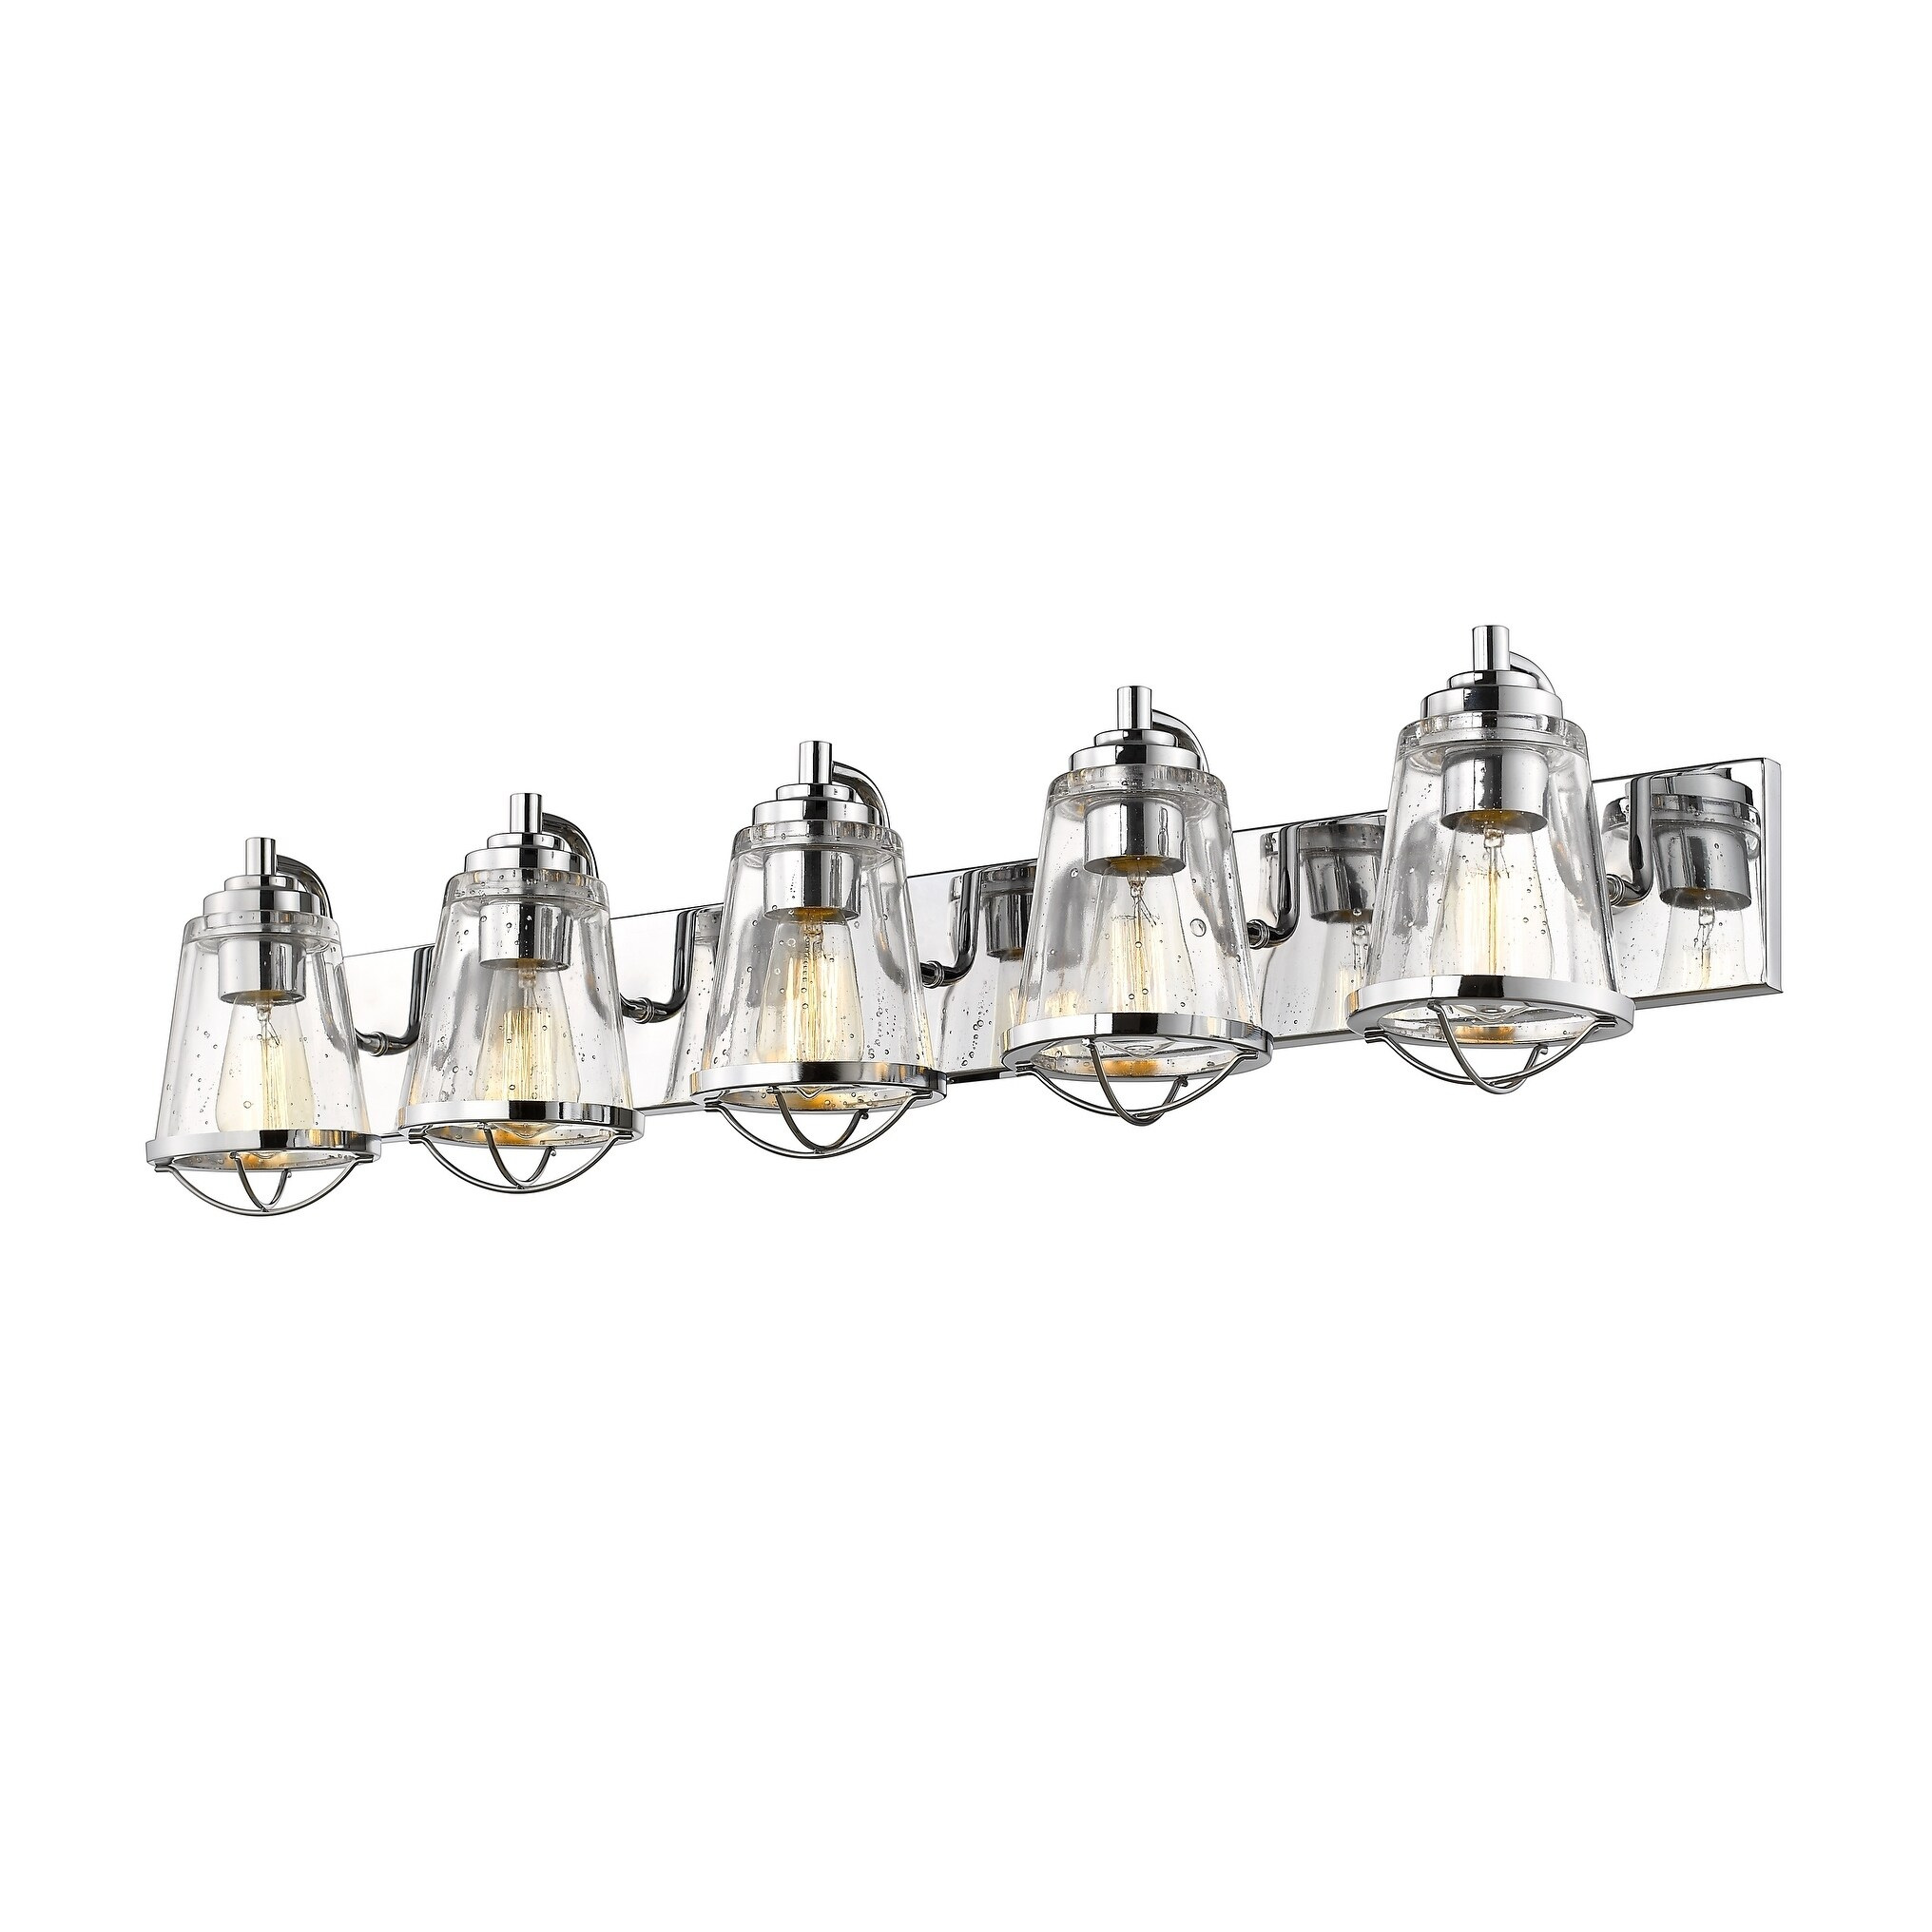 Avery Home Lighting Mariner Chrome 5 Light Vanity On Free Shipping Today 20876104